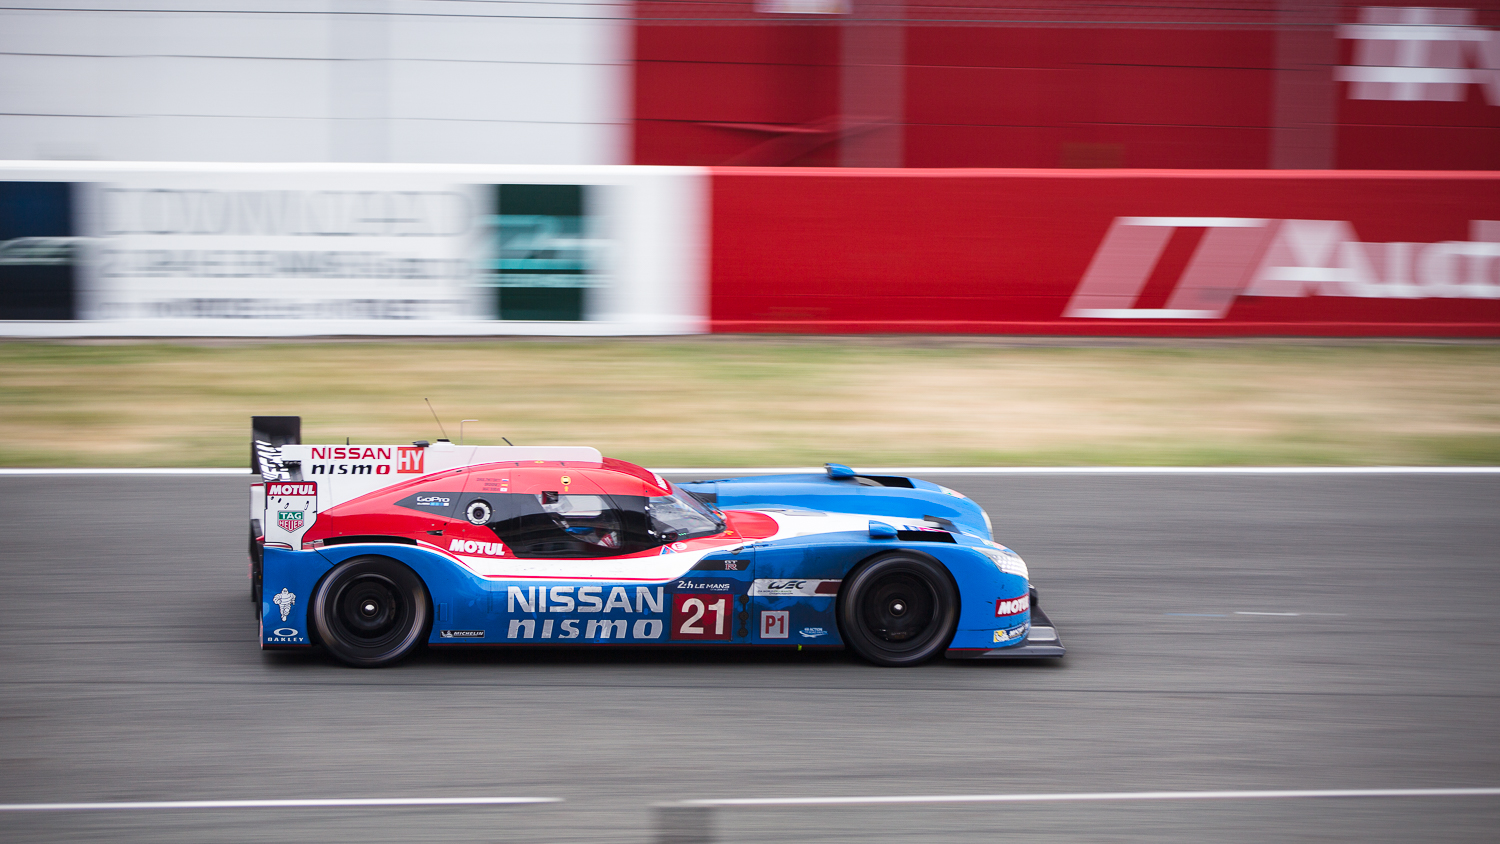 SMoores_15-06-13_Le Mans_1163-Edit.jpg